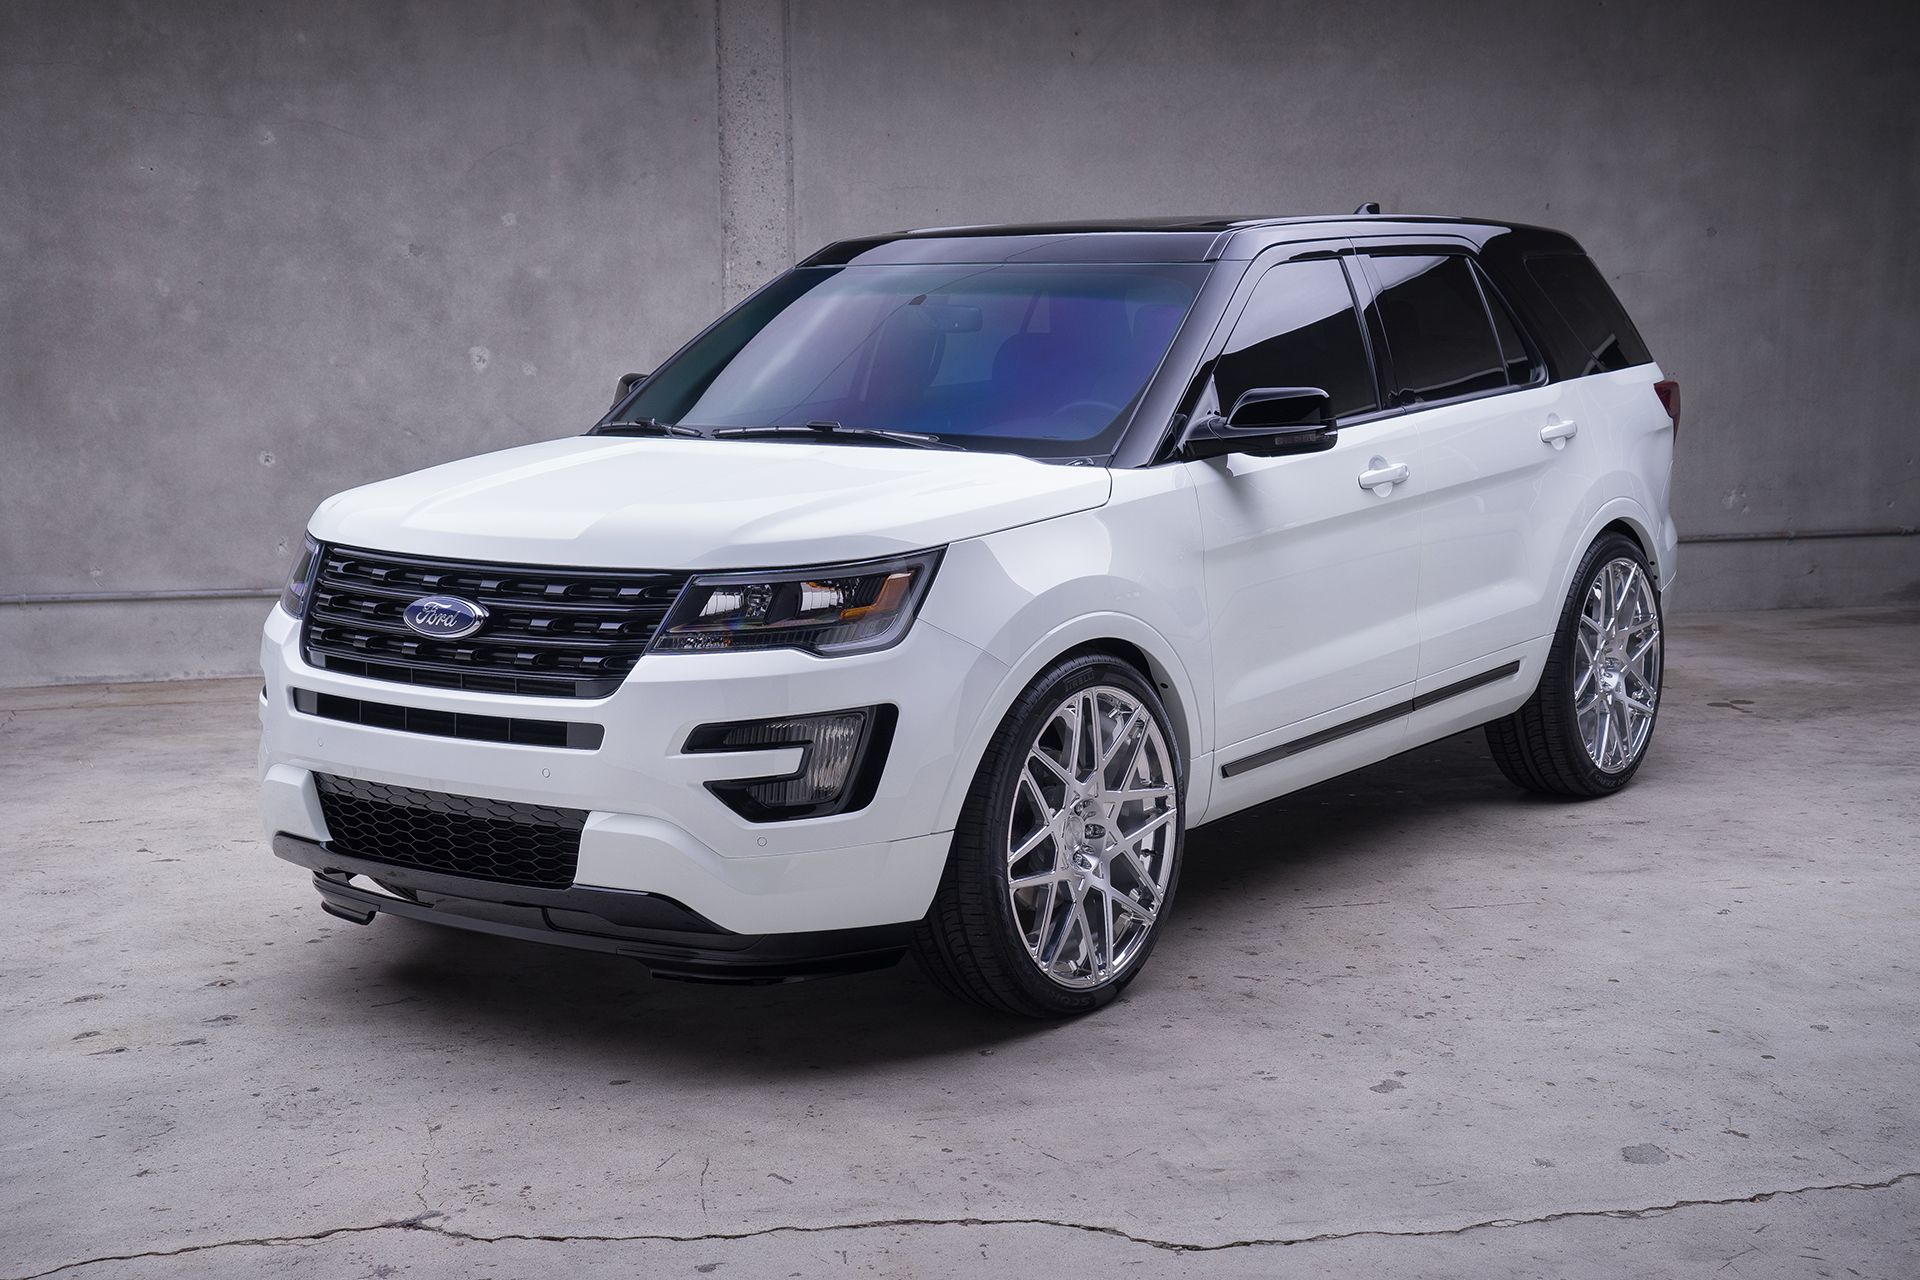 Pin By Peahenpad On Camionetas In 2020 2019 Ford Explorer Ford Explorer Ford Explorer Sport